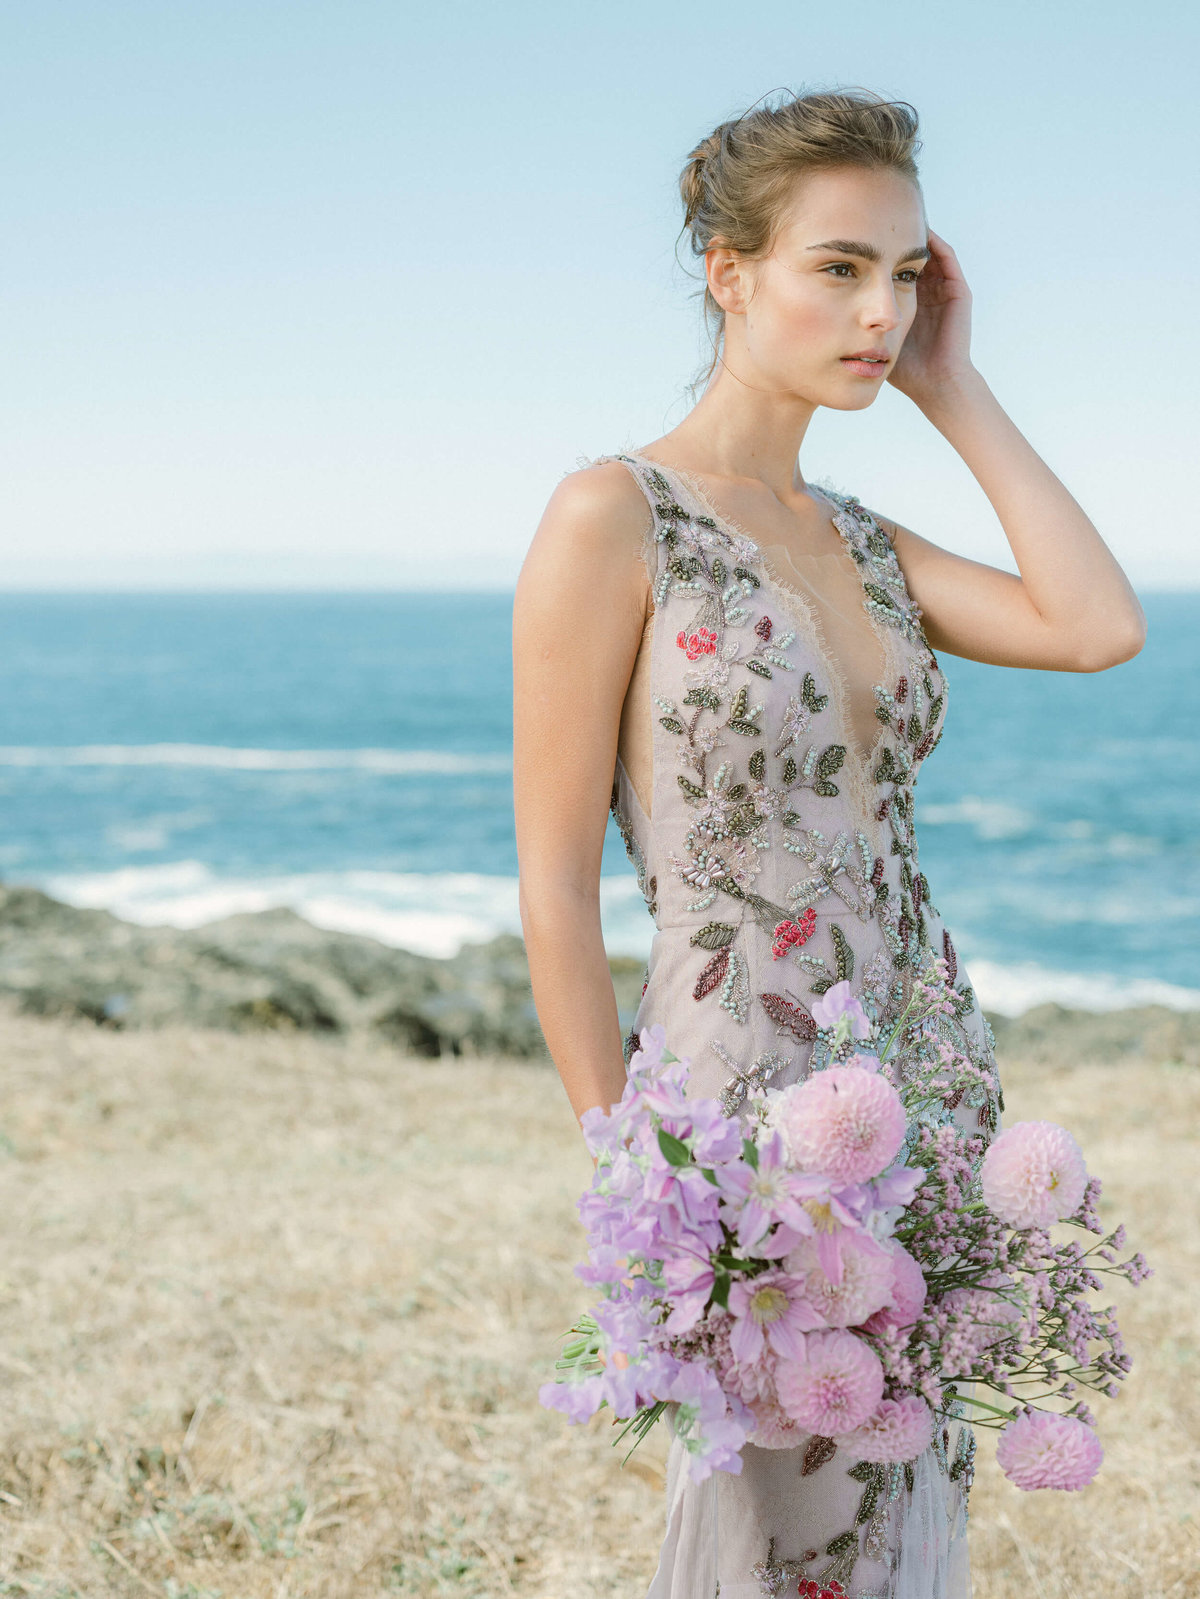 18-kt-merry-marchesa-editorial-mendocino-california